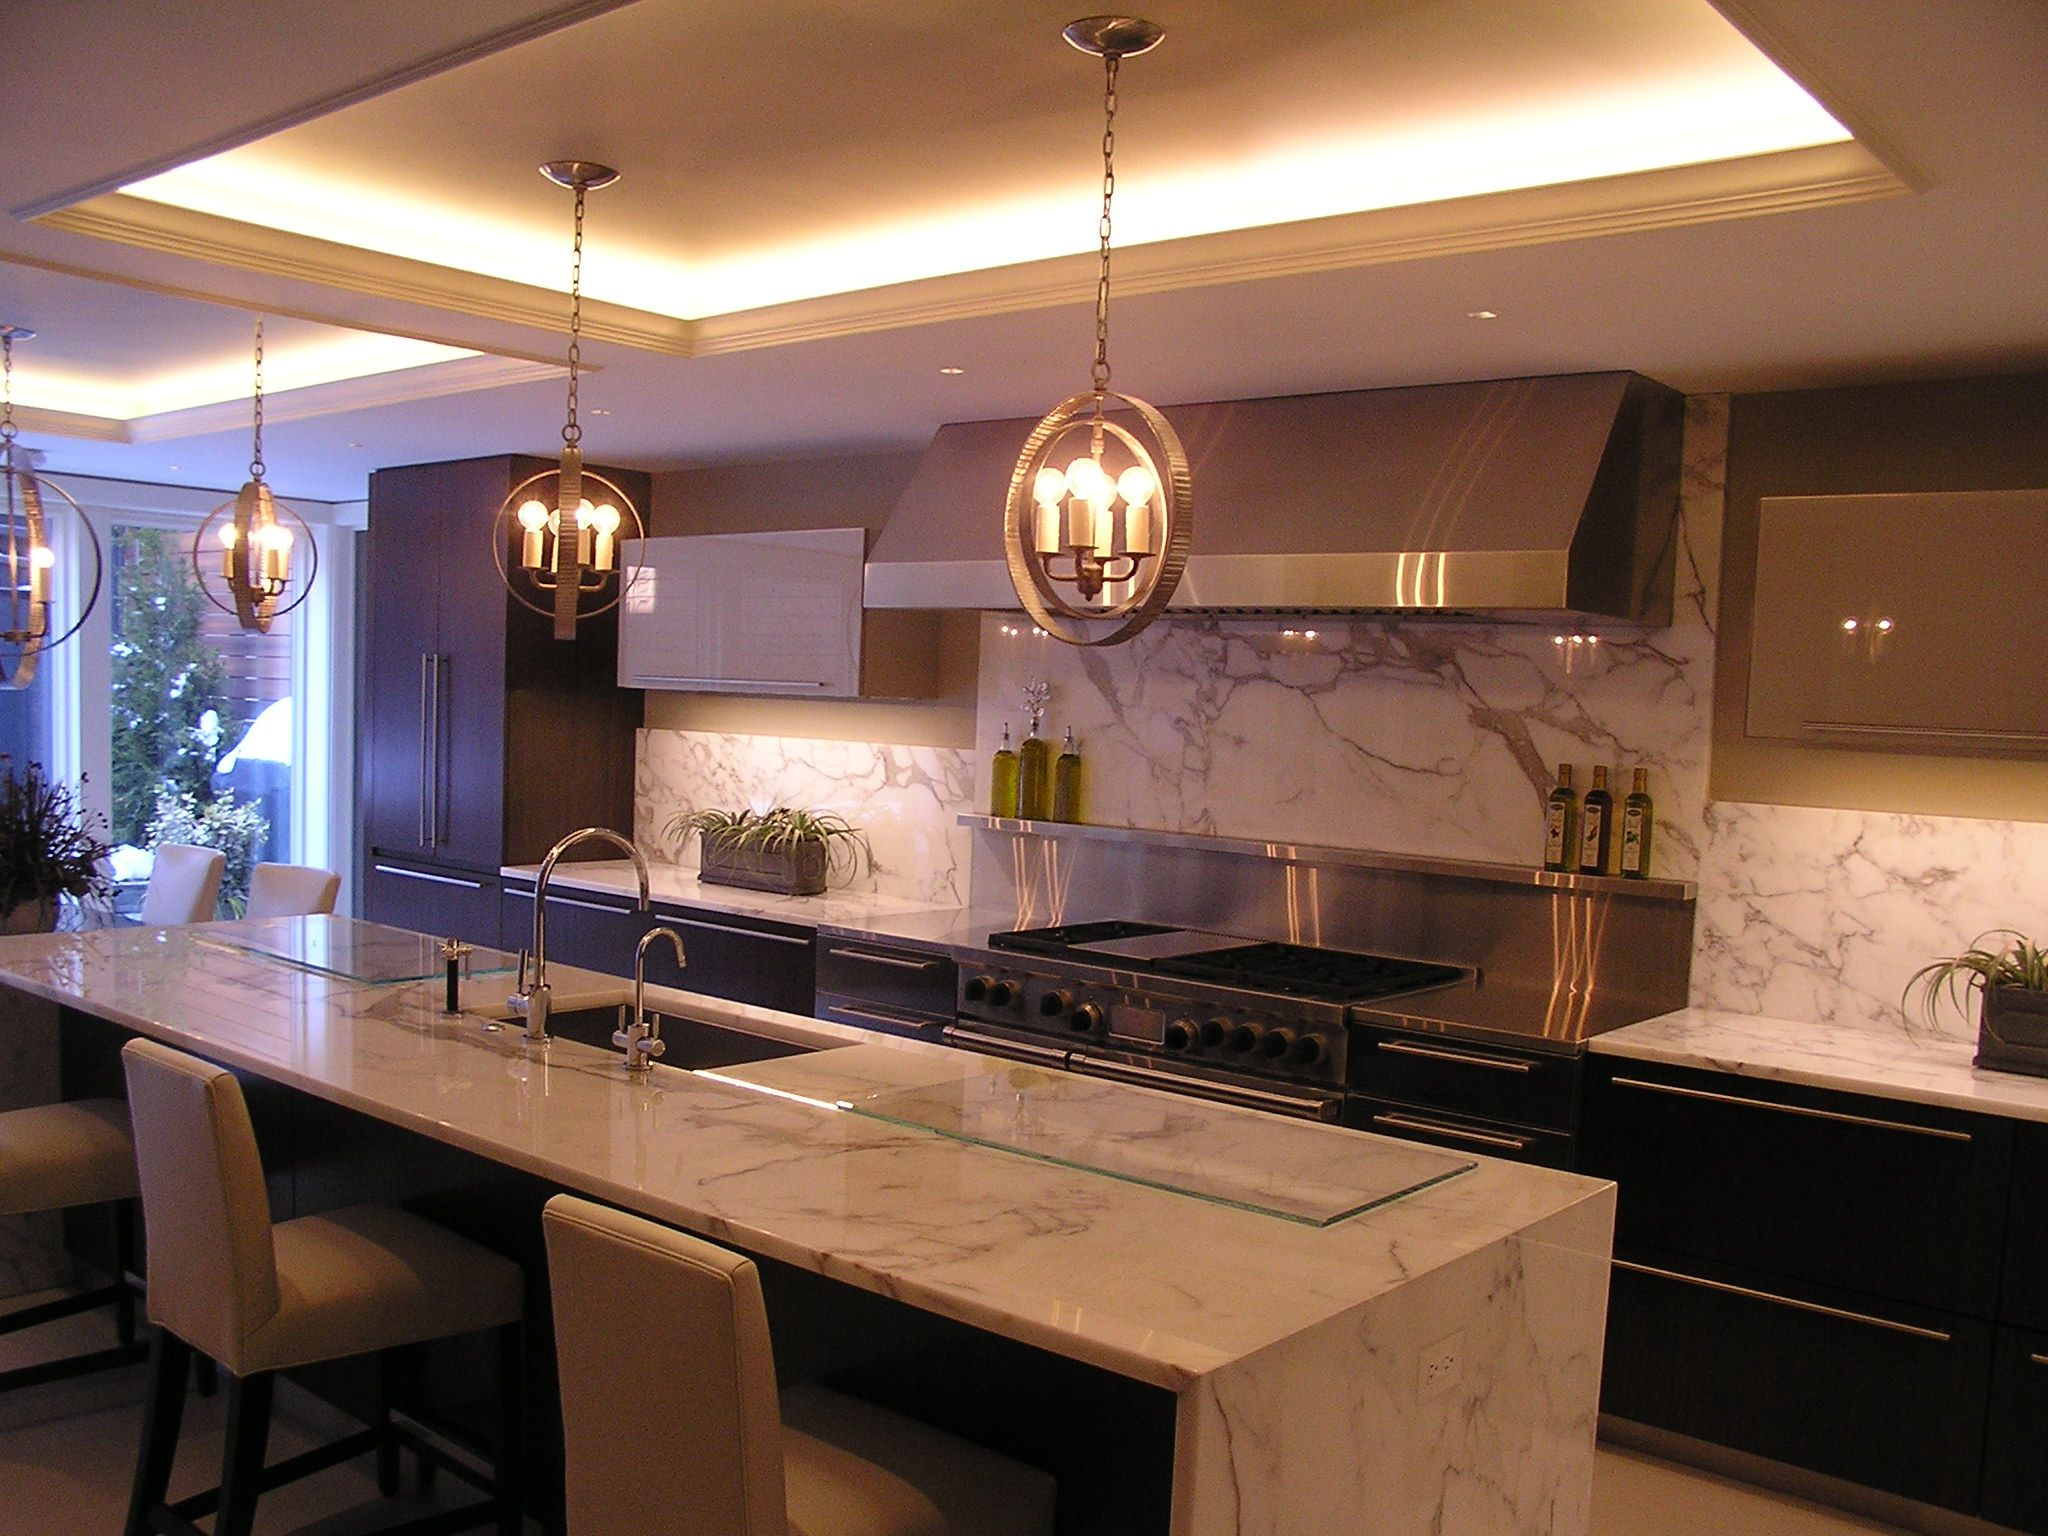 Lighting Options For Kitchens 17 Best Images About Kitchen Design Lighting Options On